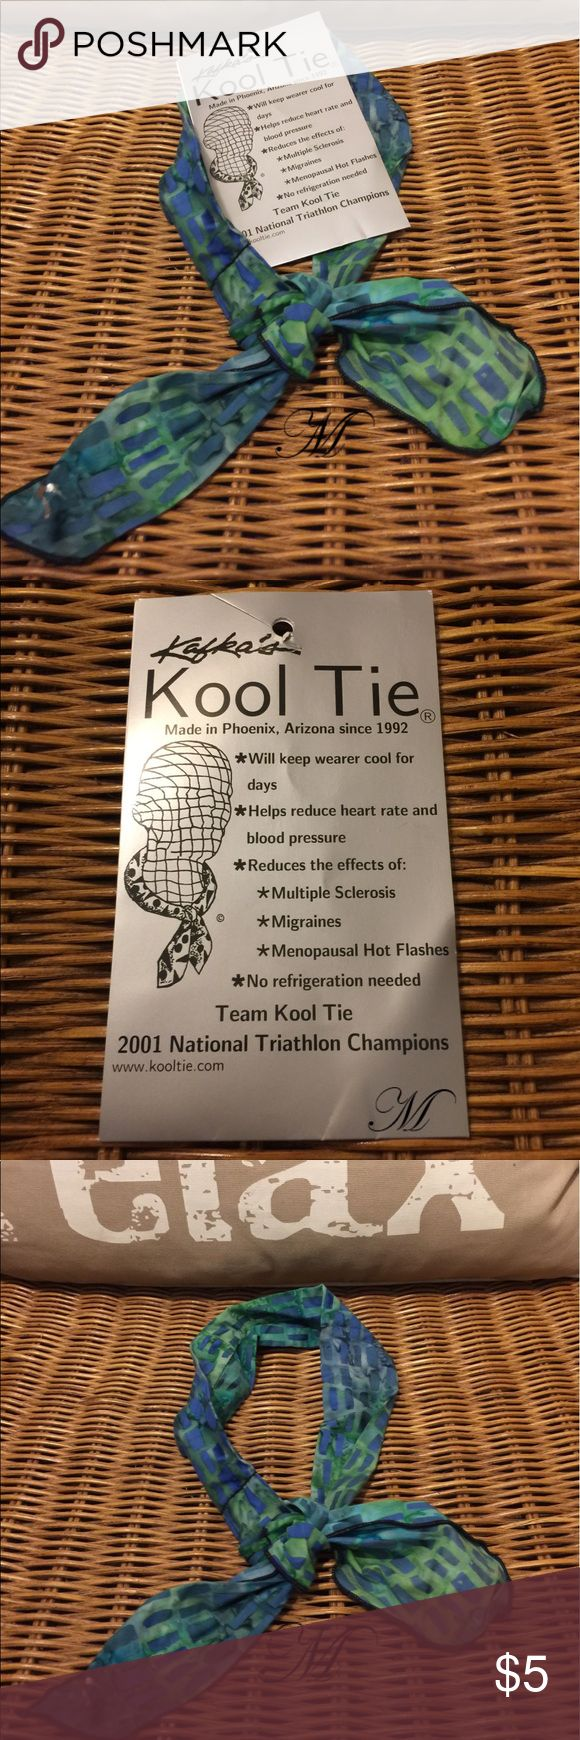 Beat the Heat with Kafka's Kool Tie Kool tie is a personal evaporative cooling system for the wearer which last for days. Helps reduce blood pressure and heart rate. Reduces The effects of multiple sclerosis, menopausal hit flashes and migraines. No refrigeration needed. Only used once. Kafka Accessories Scarves & Wraps